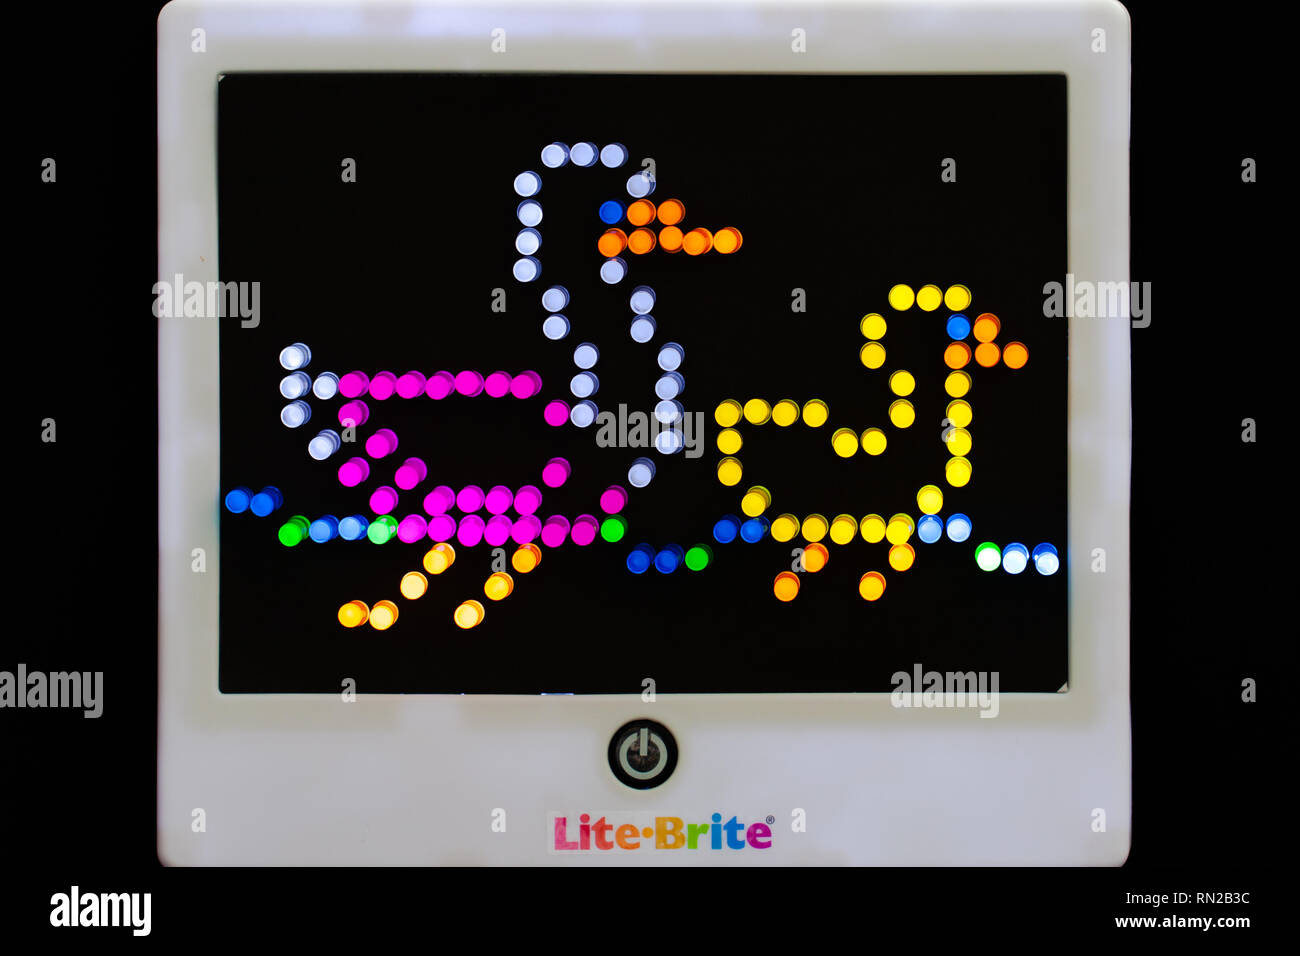 Lite-Brite image of mother duck and duckling - Stock Image